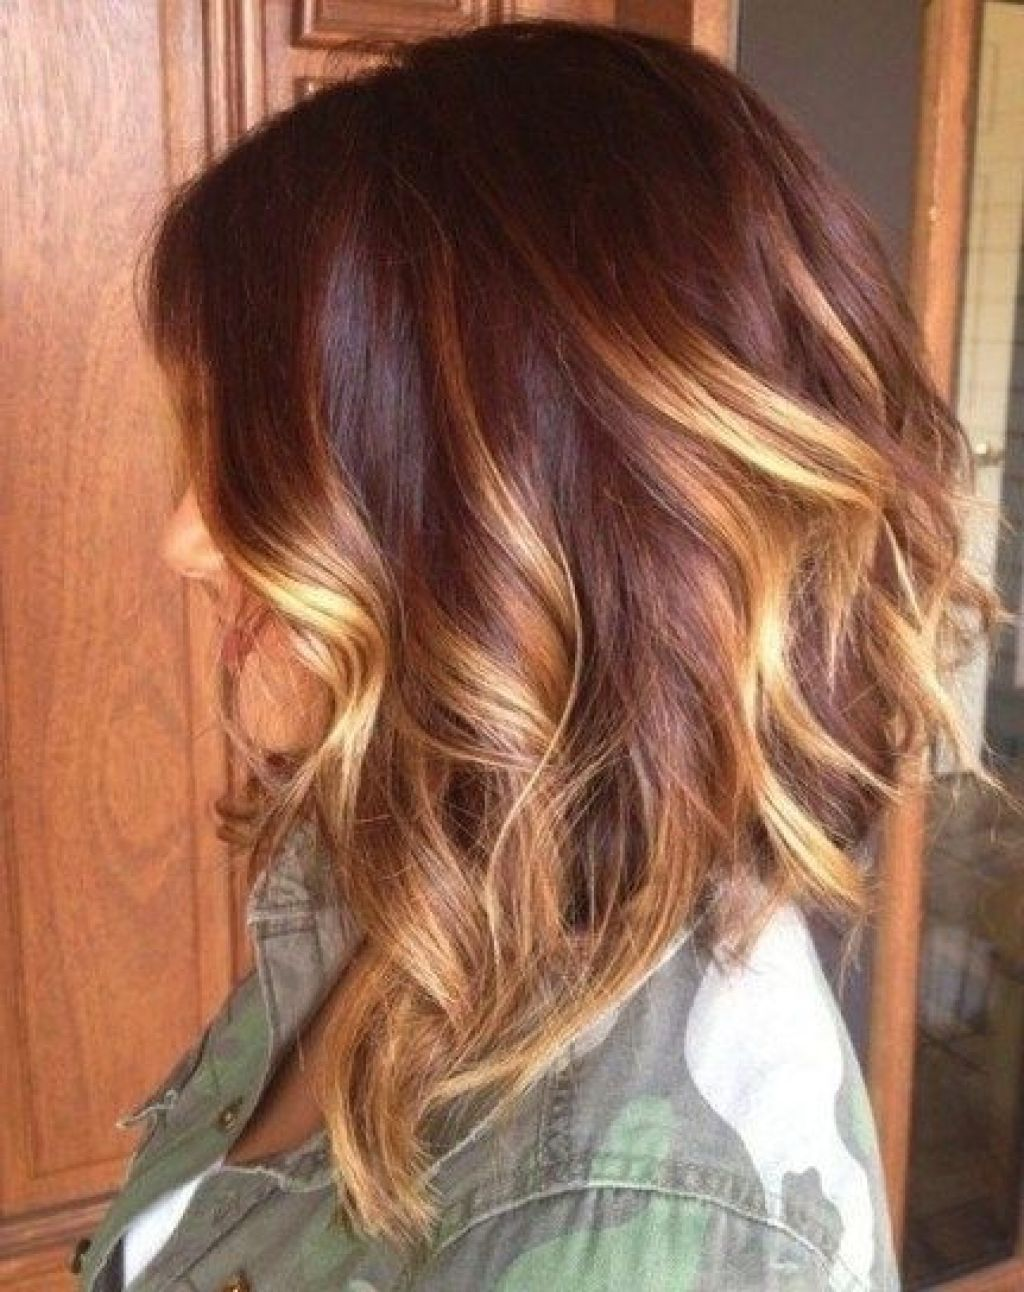 Ombre Hair Color On Medium Length Hair Hairstyle Haircut Ideas